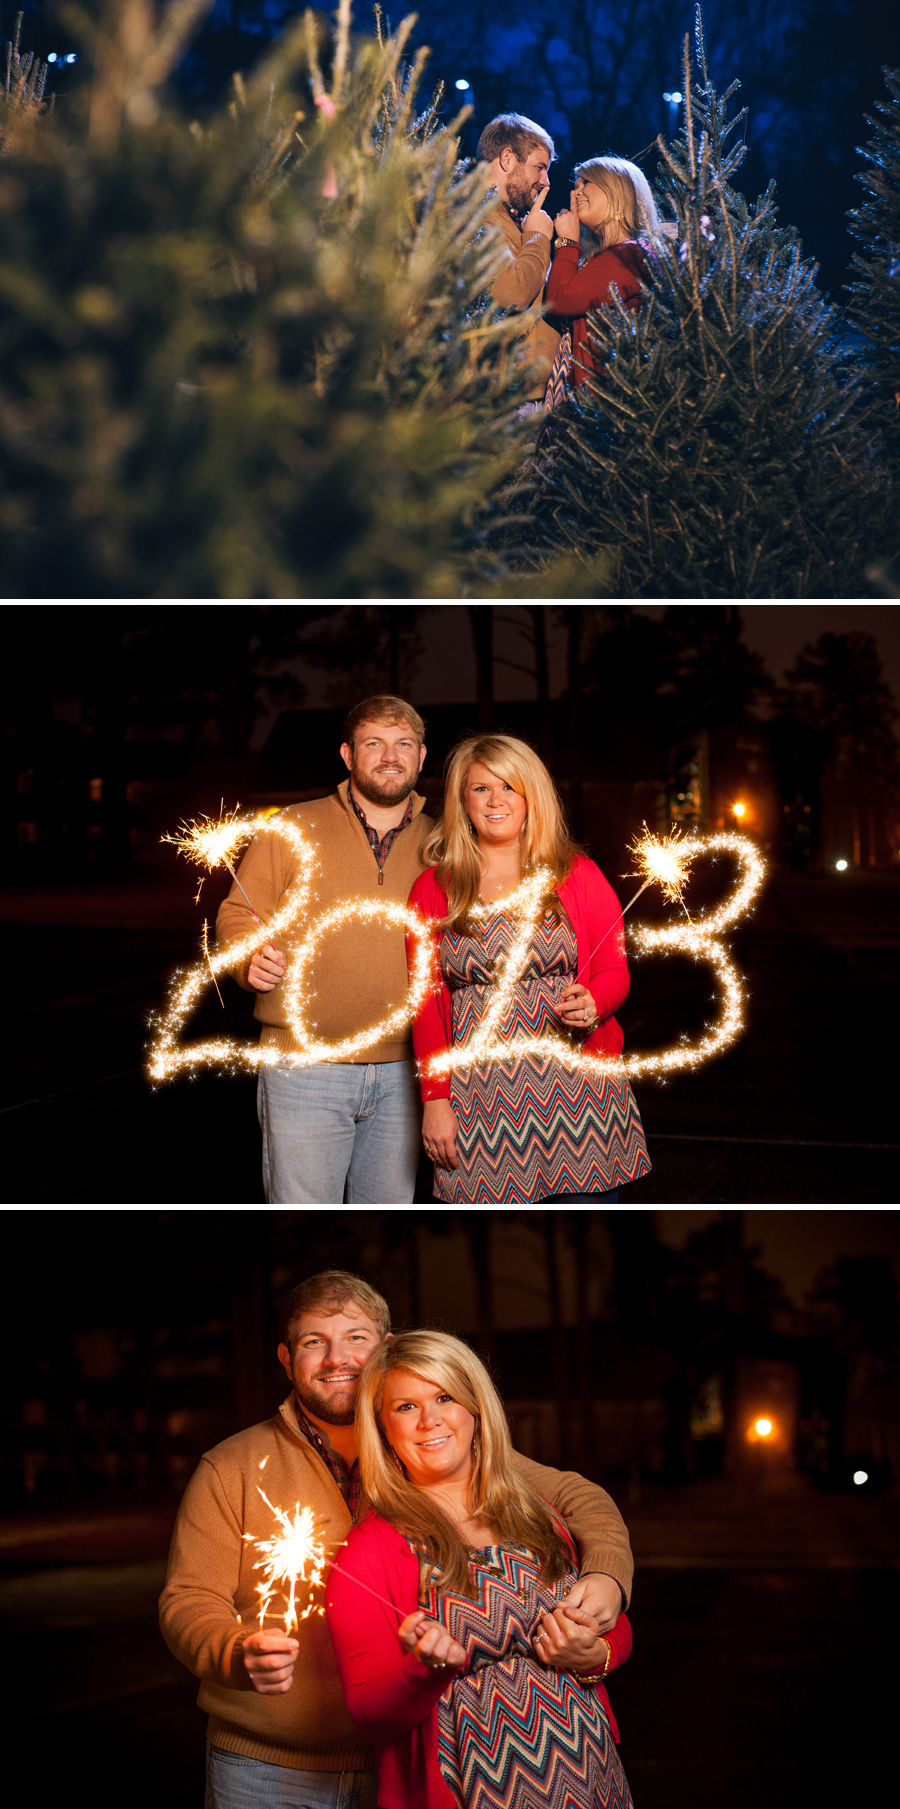 Ashley and Mitch engagements in Columbia, SC